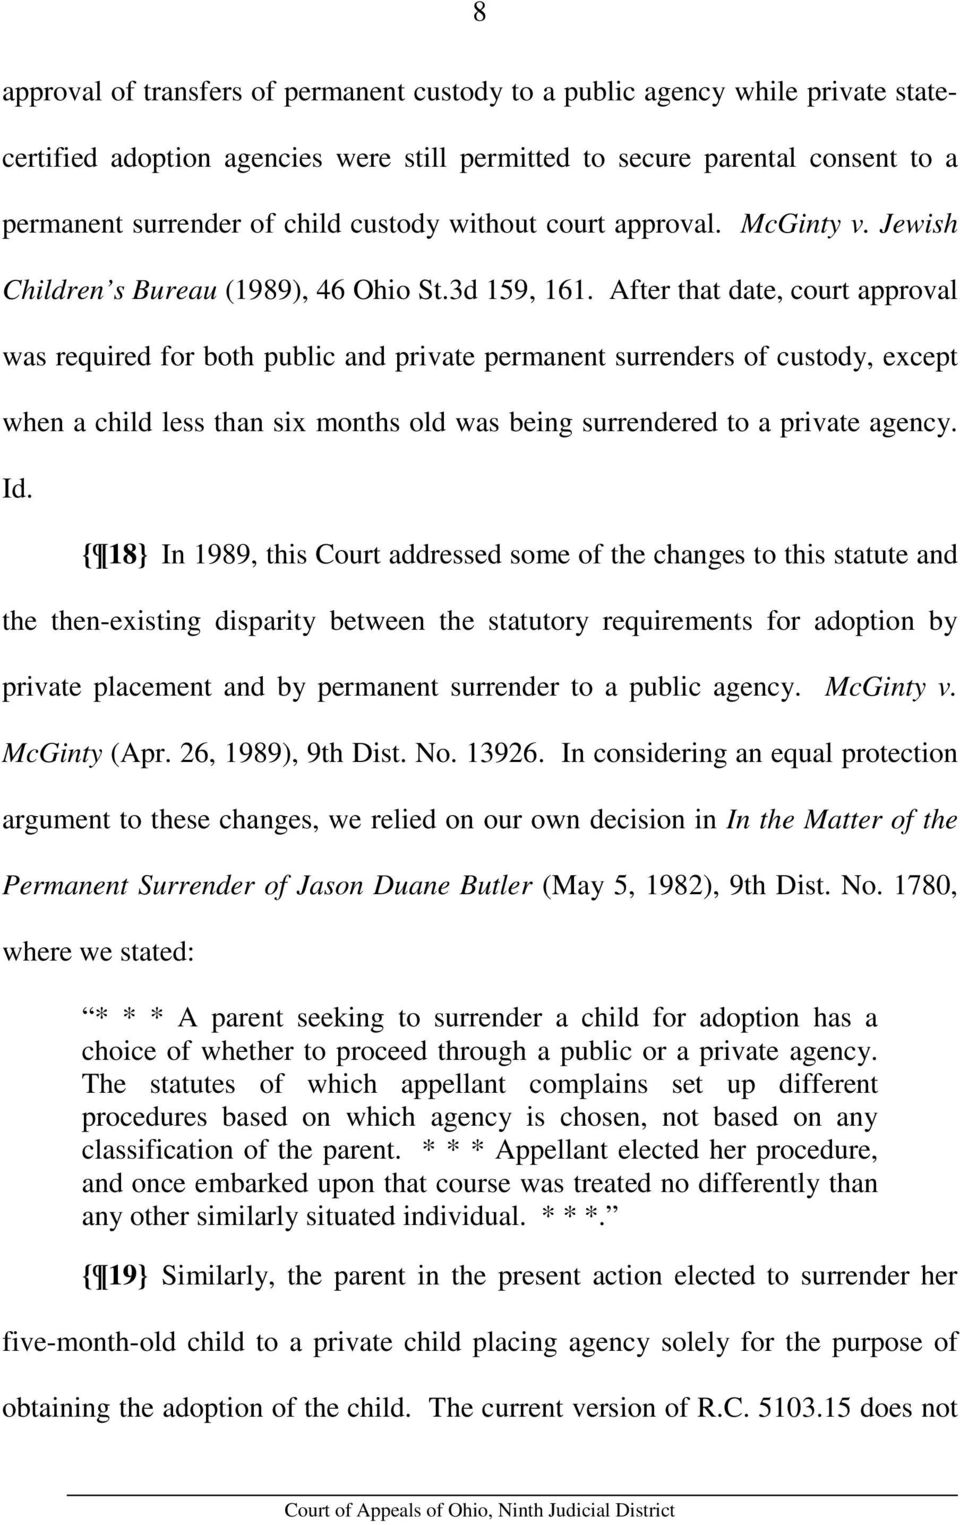 After that date, court approval was required for both public and private permanent surrenders of custody, except when a child less than six months old was being surrendered to a private agency. Id.